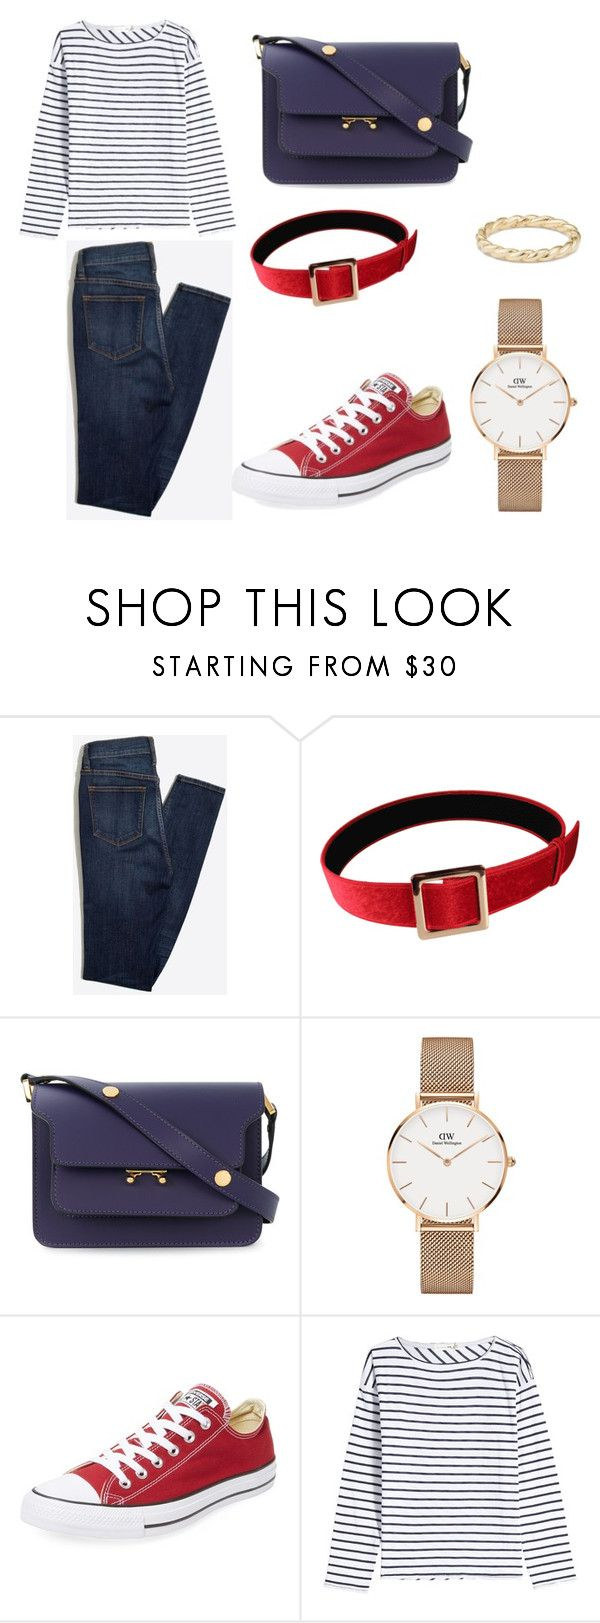 """sailors outfit"" by meliaa888 ❤ liked on Polyvore featuring Marni, Daniel Wellington, Converse, rag & bone and David Yurman"